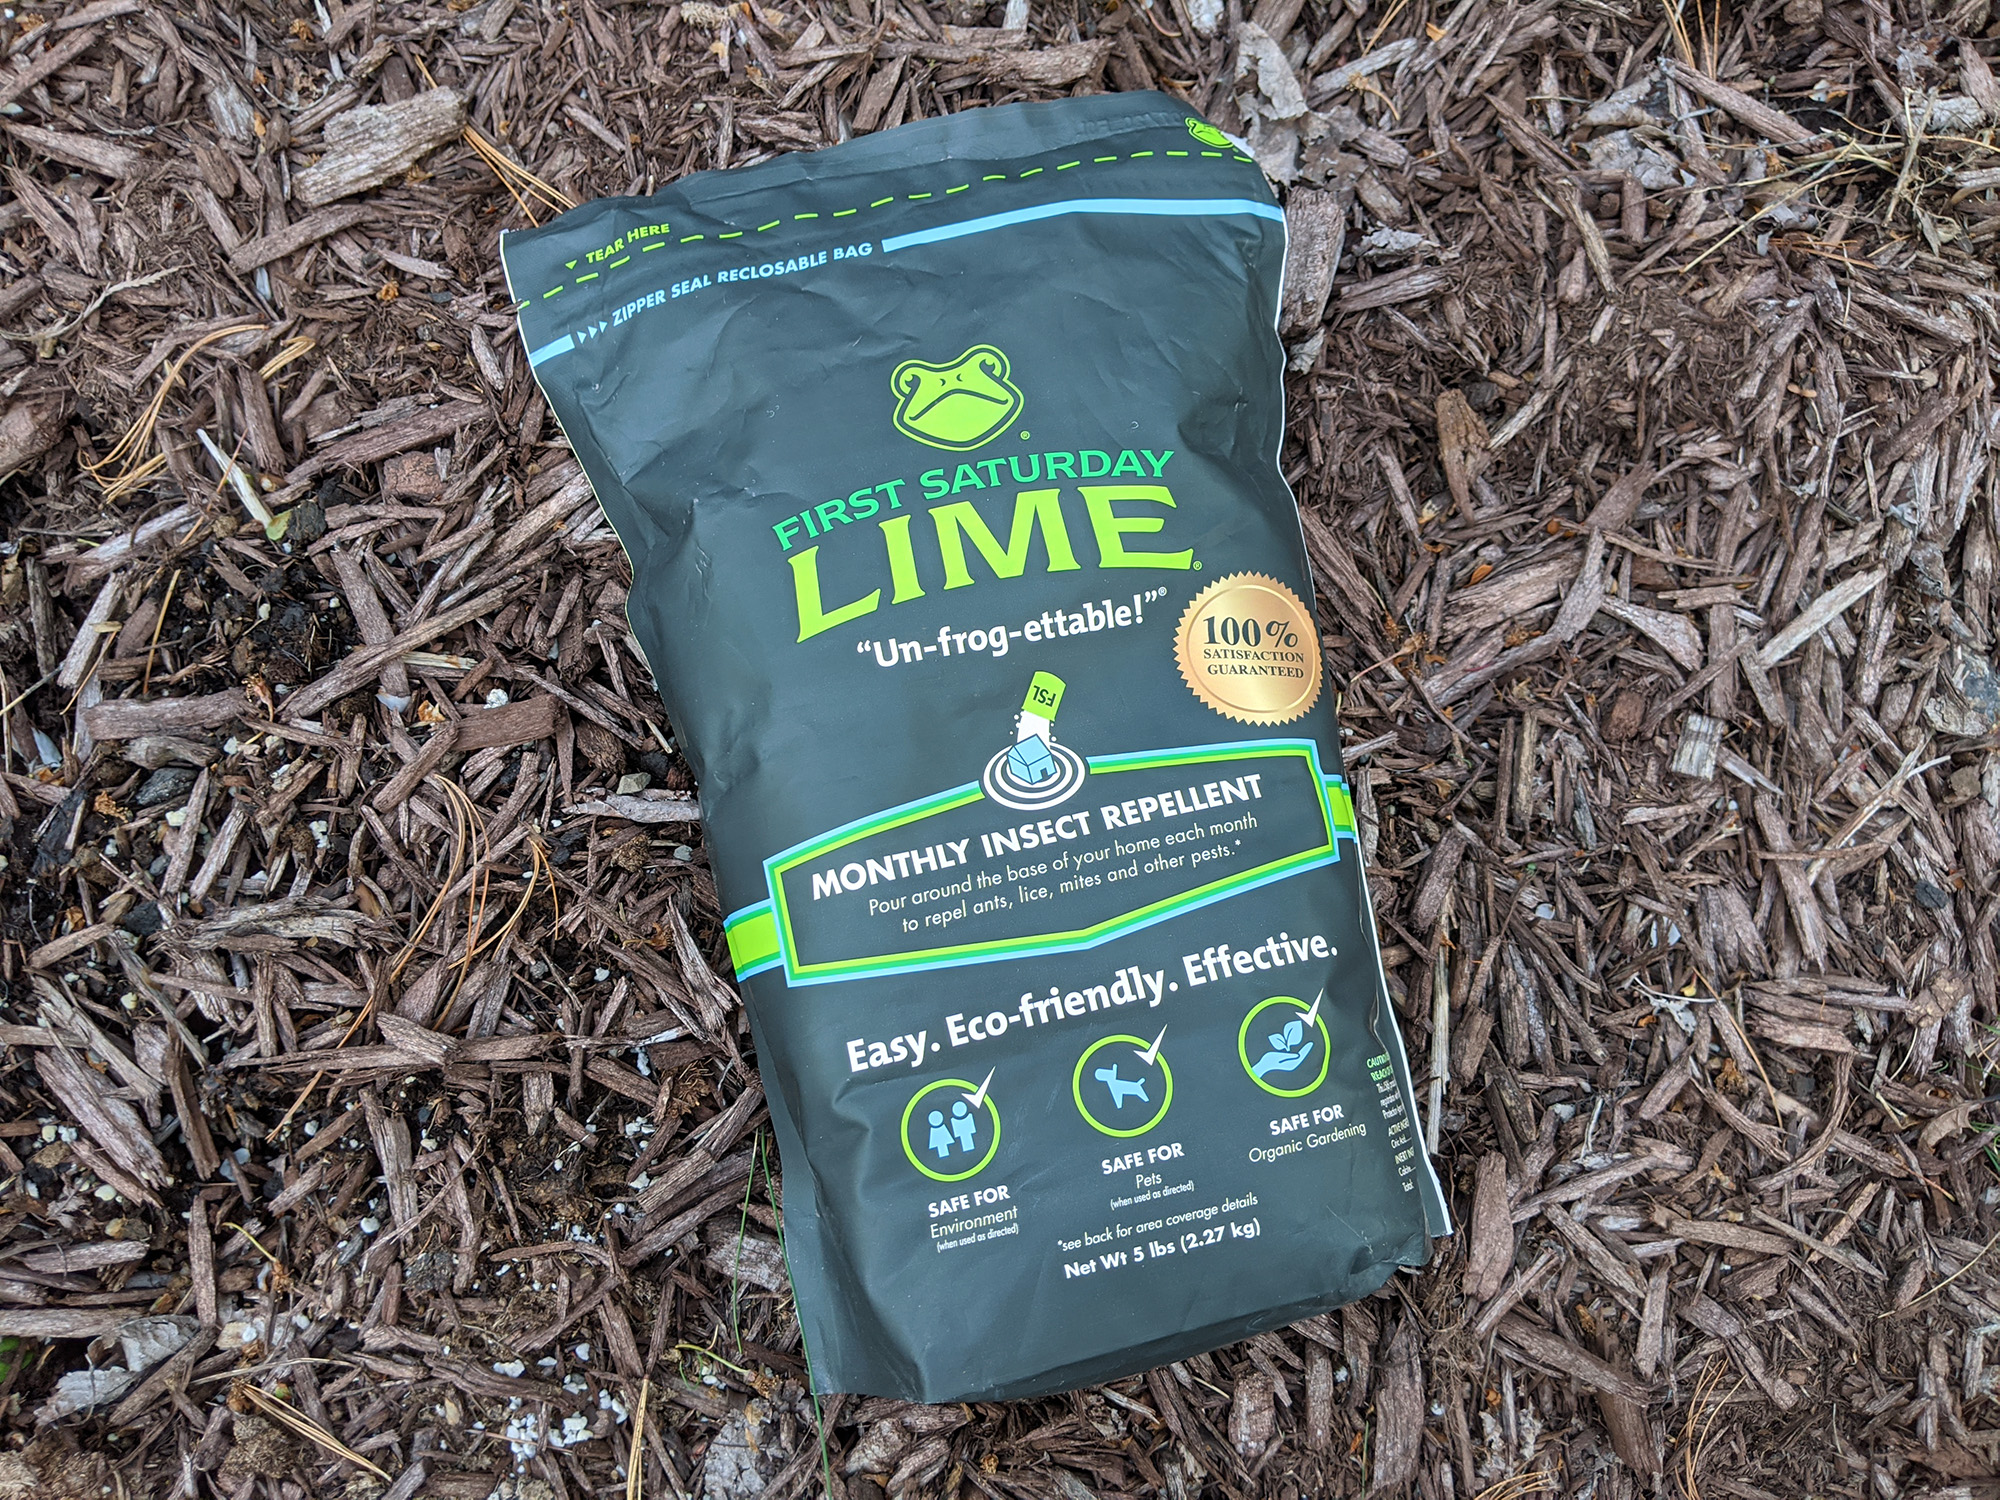 First Saturday Lime Review Does It Work Bug Lord